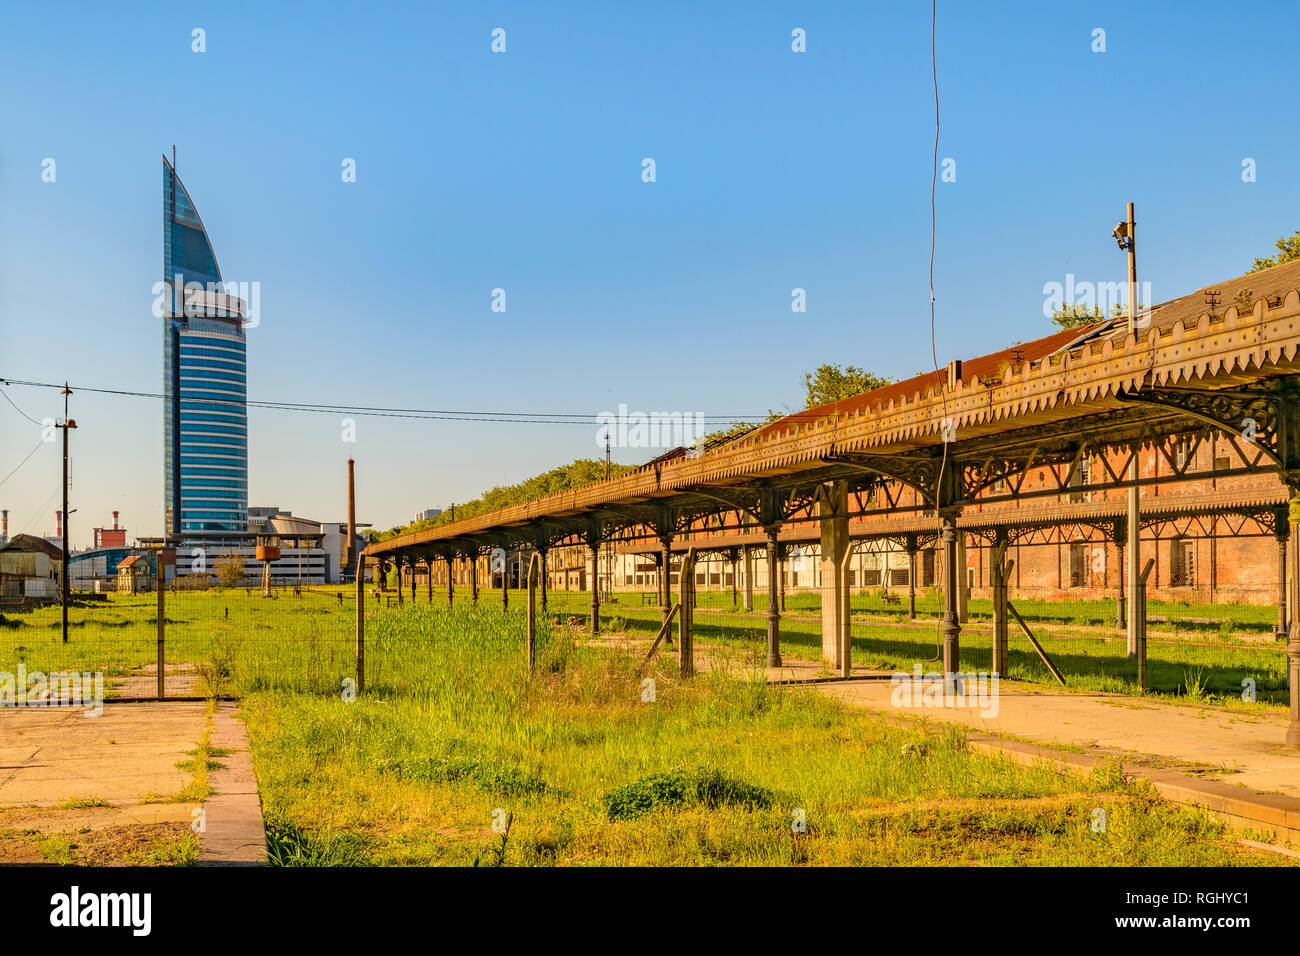 Abandoned old train station with contemporary tower building at background in aguada district, Montevideo, Uruguay Stock Photo